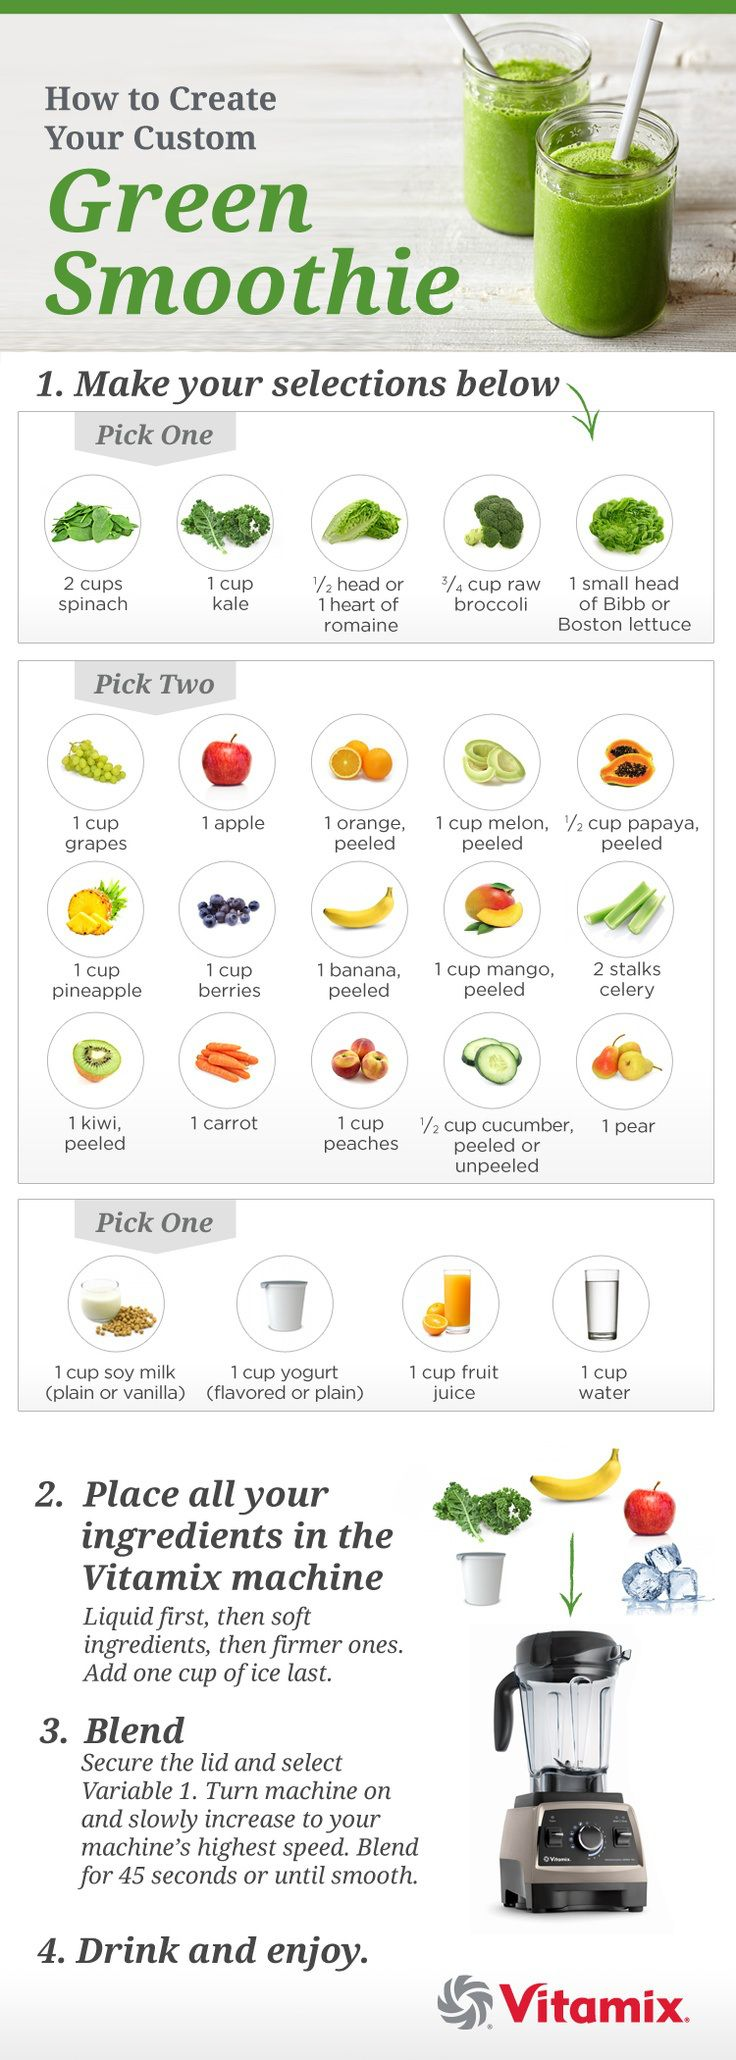 Vegan (and vegetarian) green smoothie combinations. (If sensitive to any fruits listed, use substitutions.) #candida #yeast